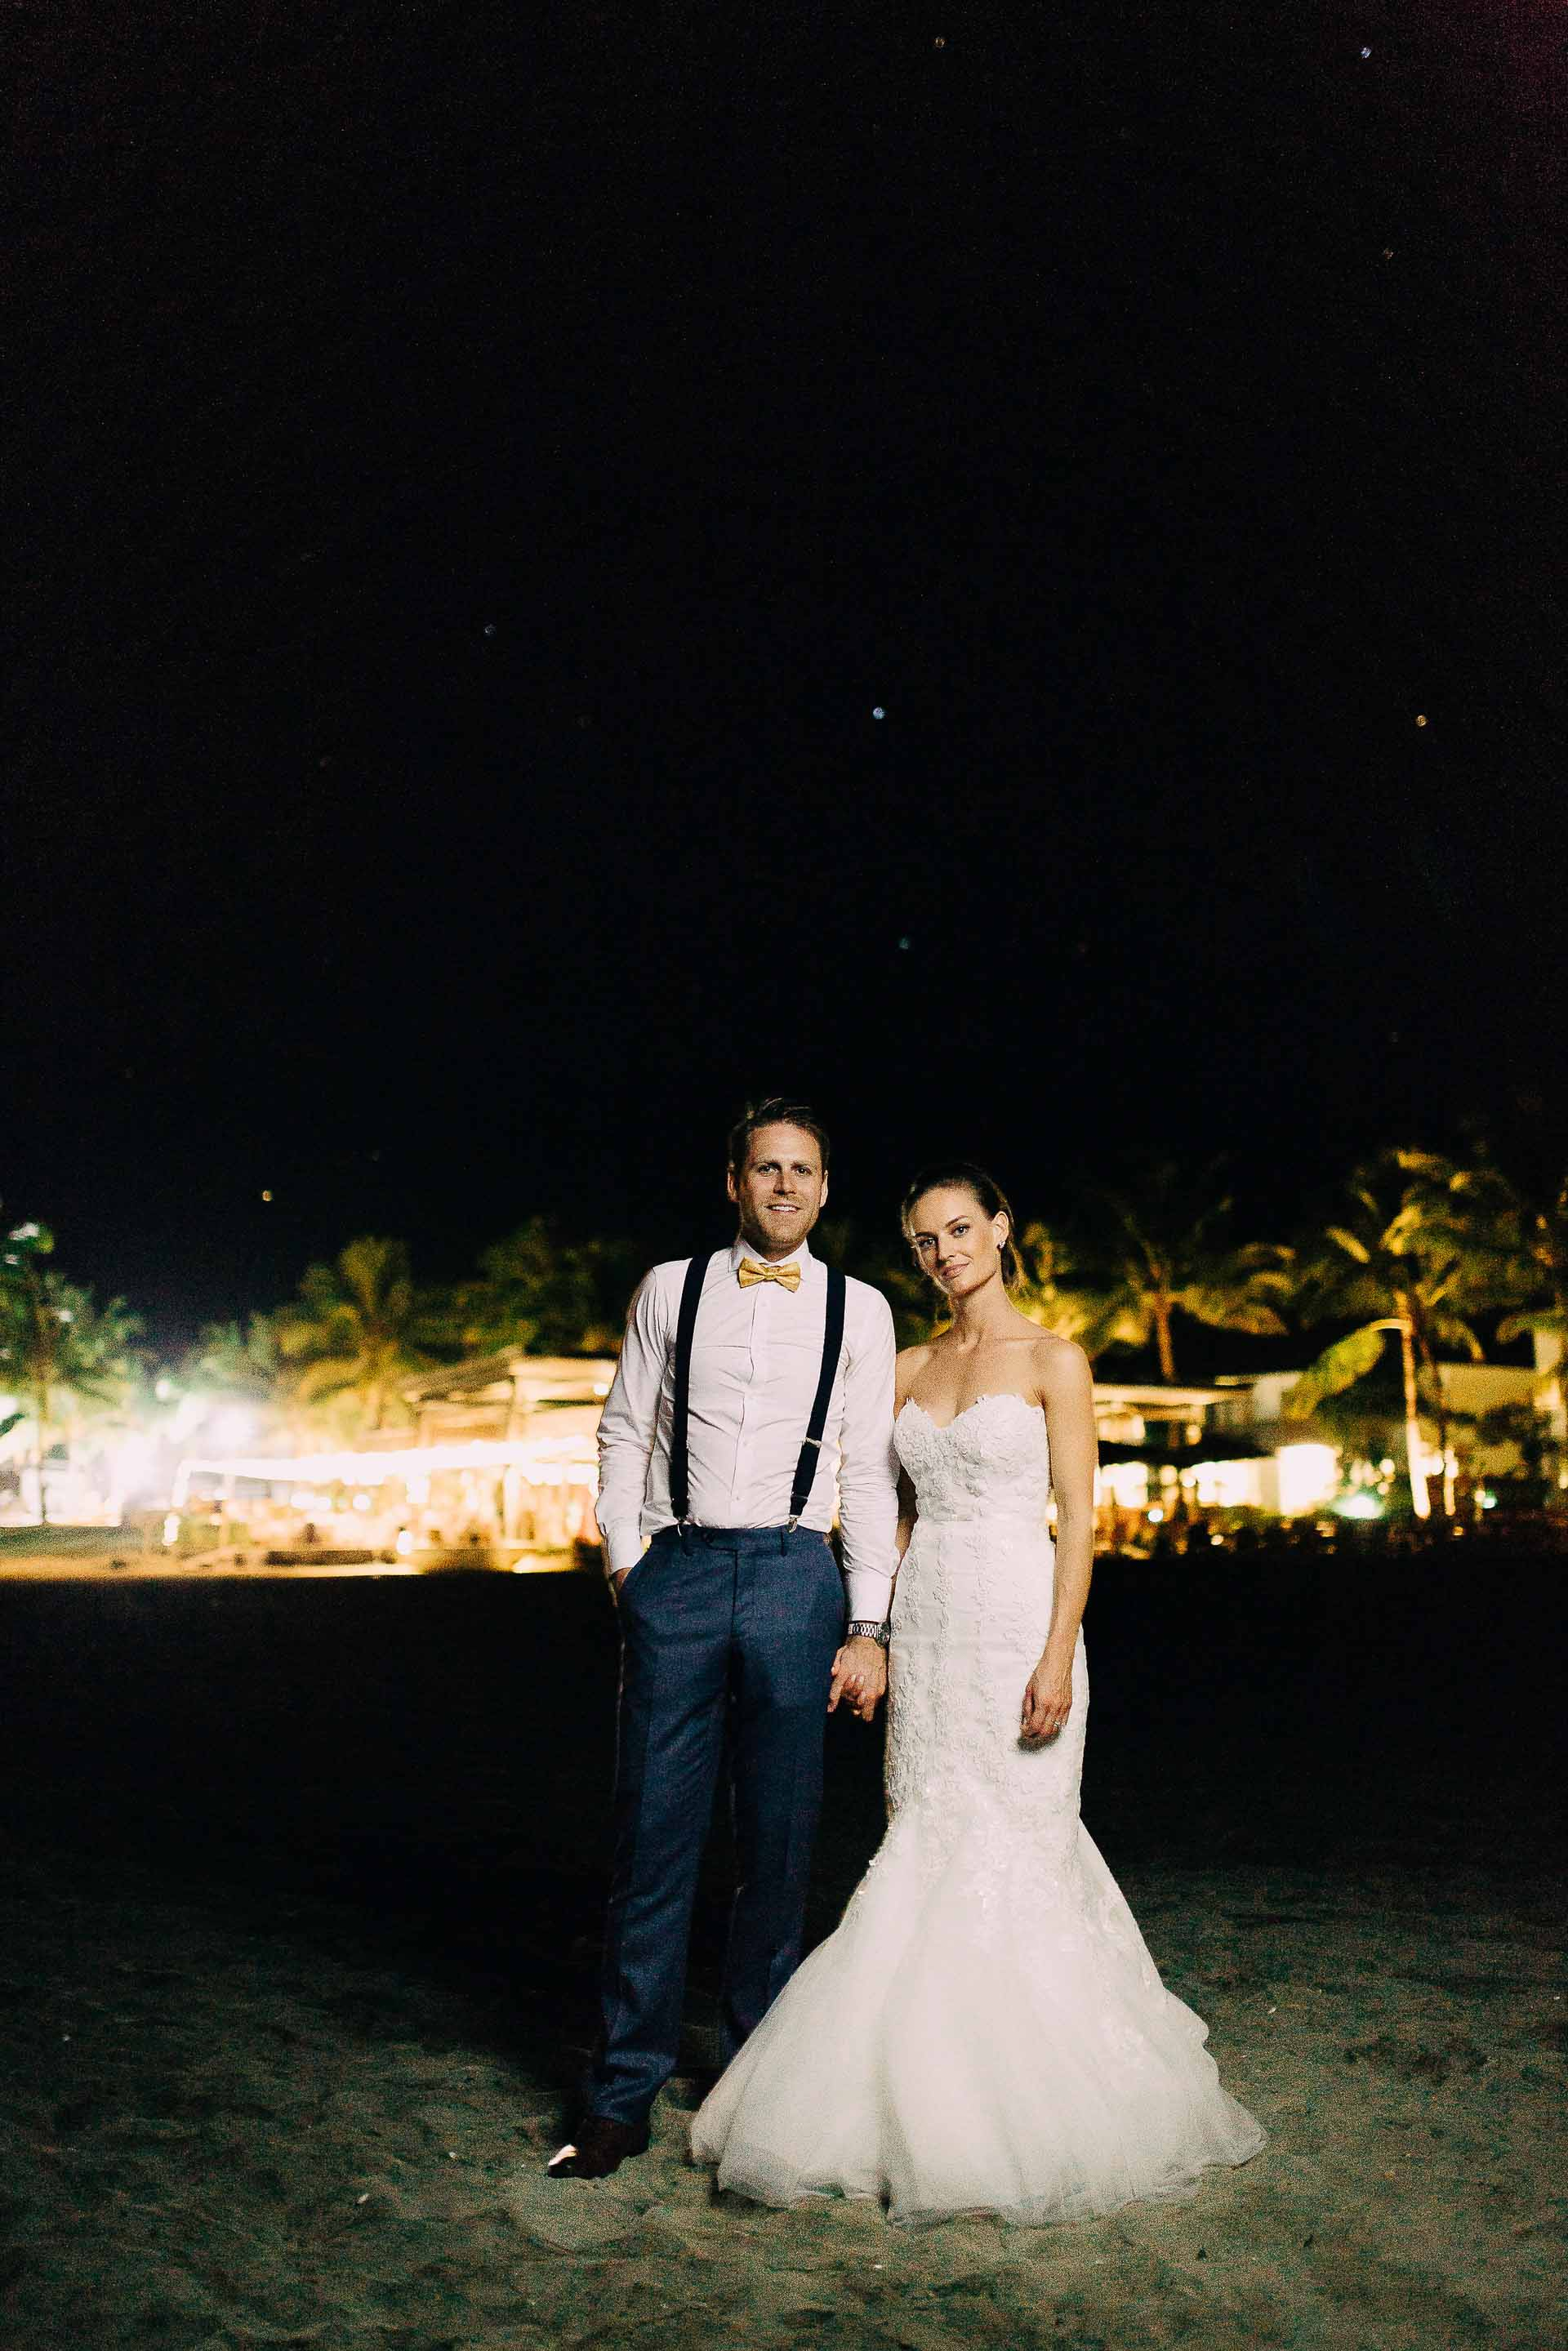 Fiji Bride & Groom in front of their reception lights on their wedding night.